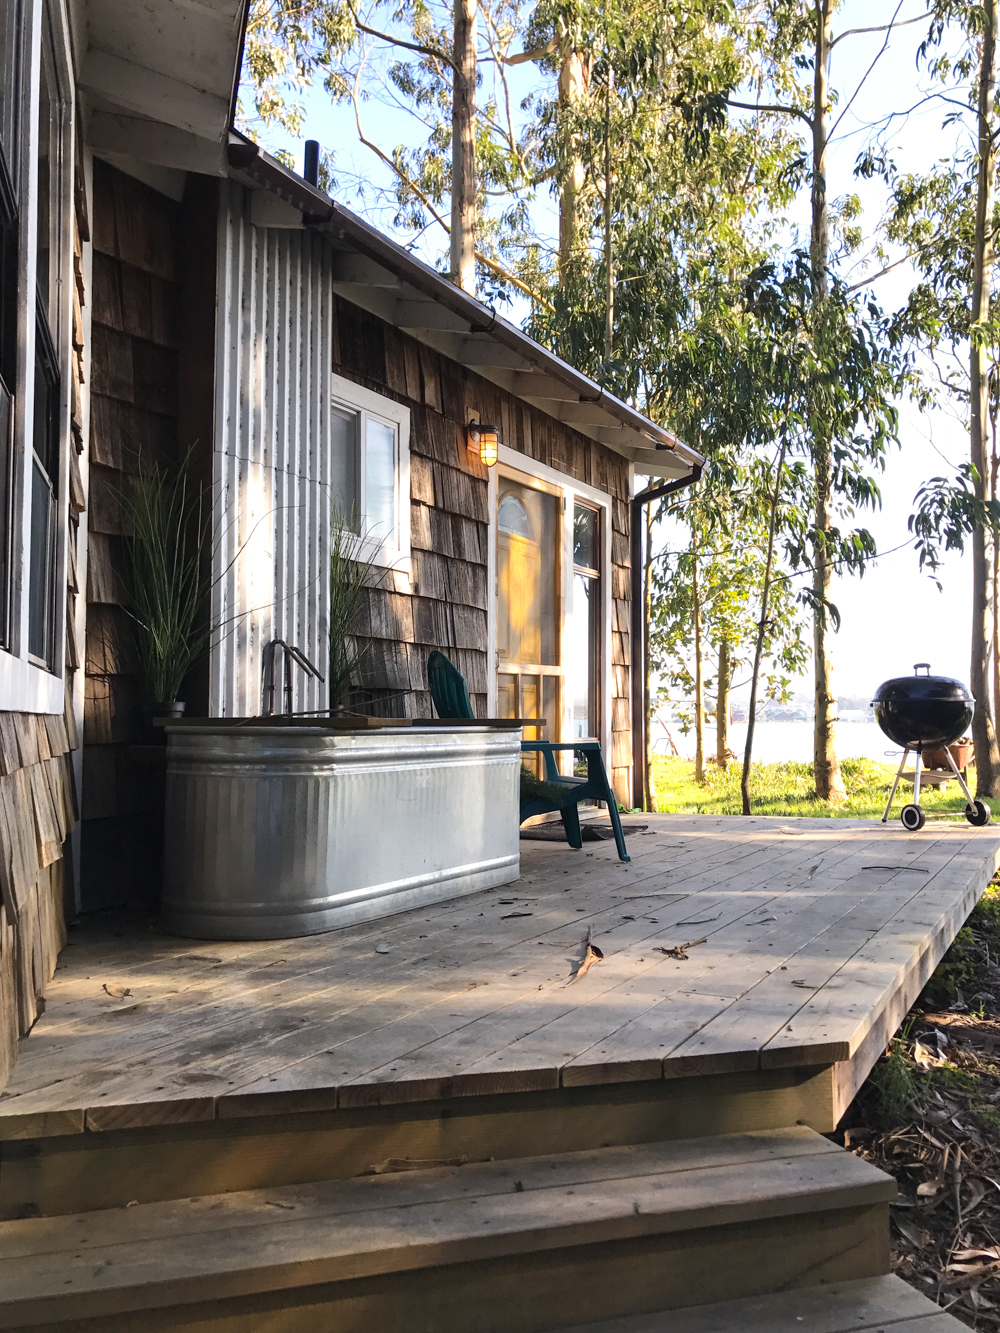 The porch and tub at the Mid Century Cabin at Oyster Beach Social Club in Eureka, CA.